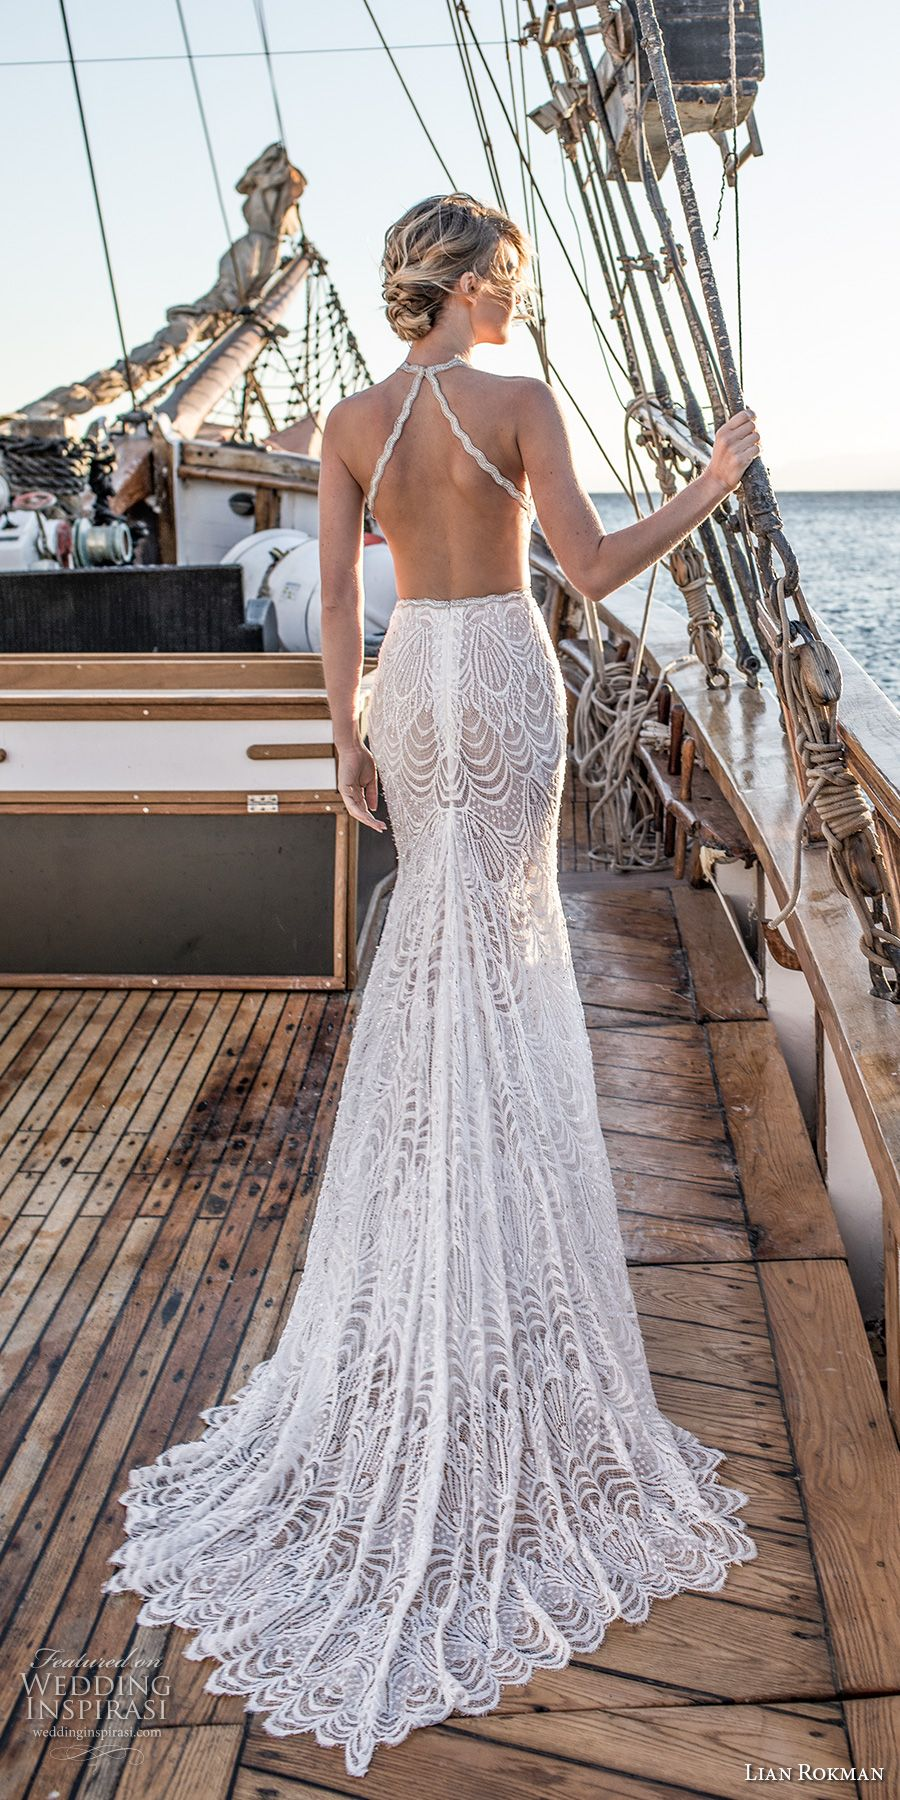 Lian Rokman 2017 Bridal Sleeveless Strap Halter Deep Plunging Sweetheart Neckline Full Embellishment Elegant Fit And Flare Wedding Dress Open Back Short: Beautiful Stone Wedding Dress At Websimilar.org